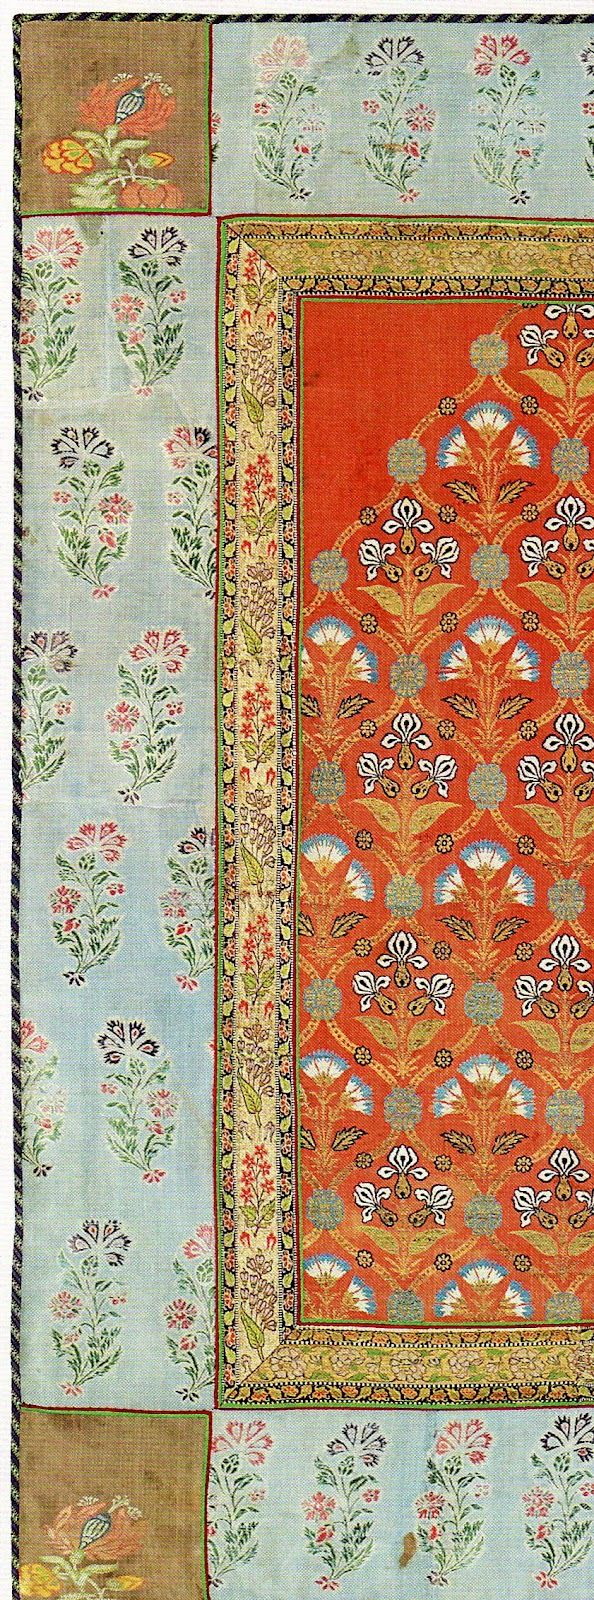 Above, a detail from a silk cover with metallic-wrapped threads. Believed to be 18th century North Indian. Collection of The Textile Museum and included in The Sultan's Garden: The Blossoming of Ottoman Art.